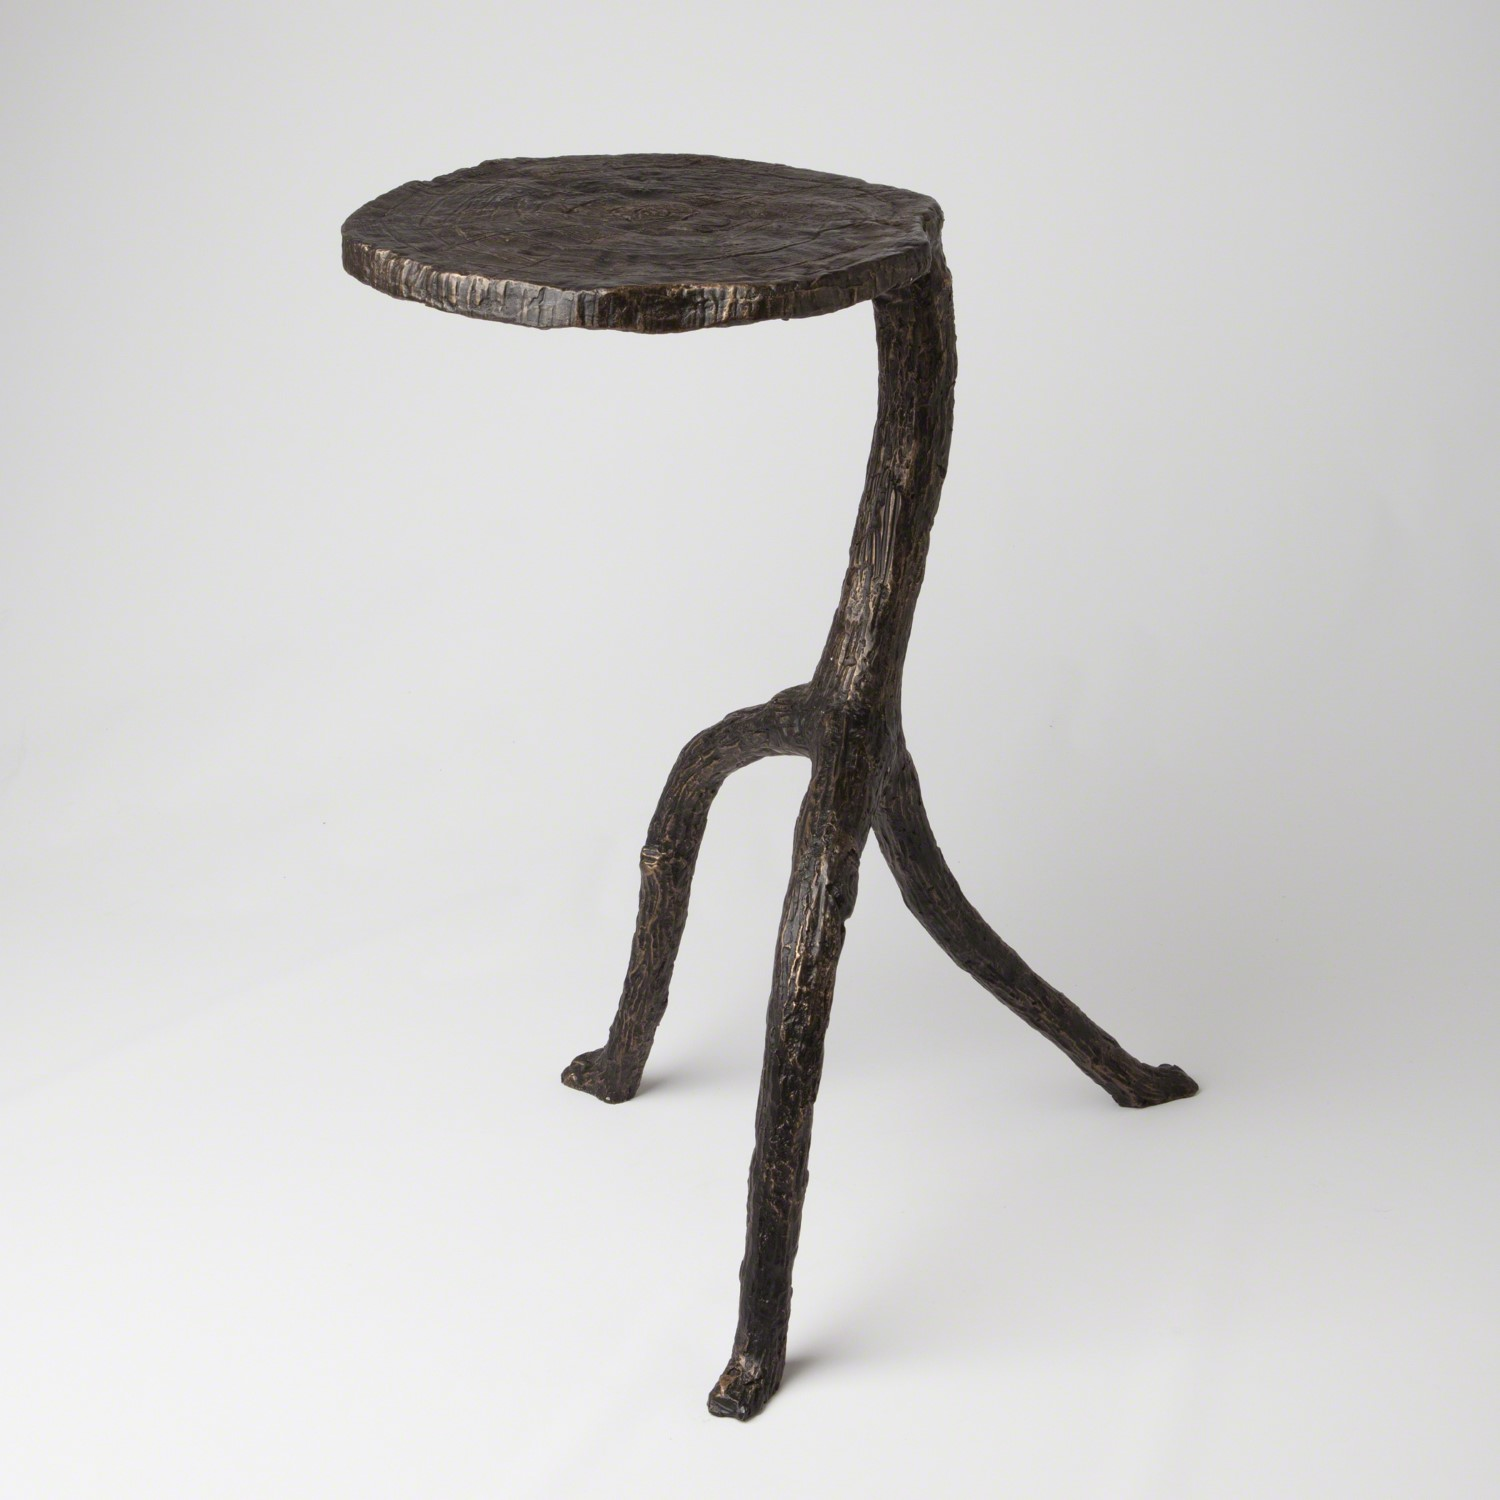 Reacher Side Table – $725.00